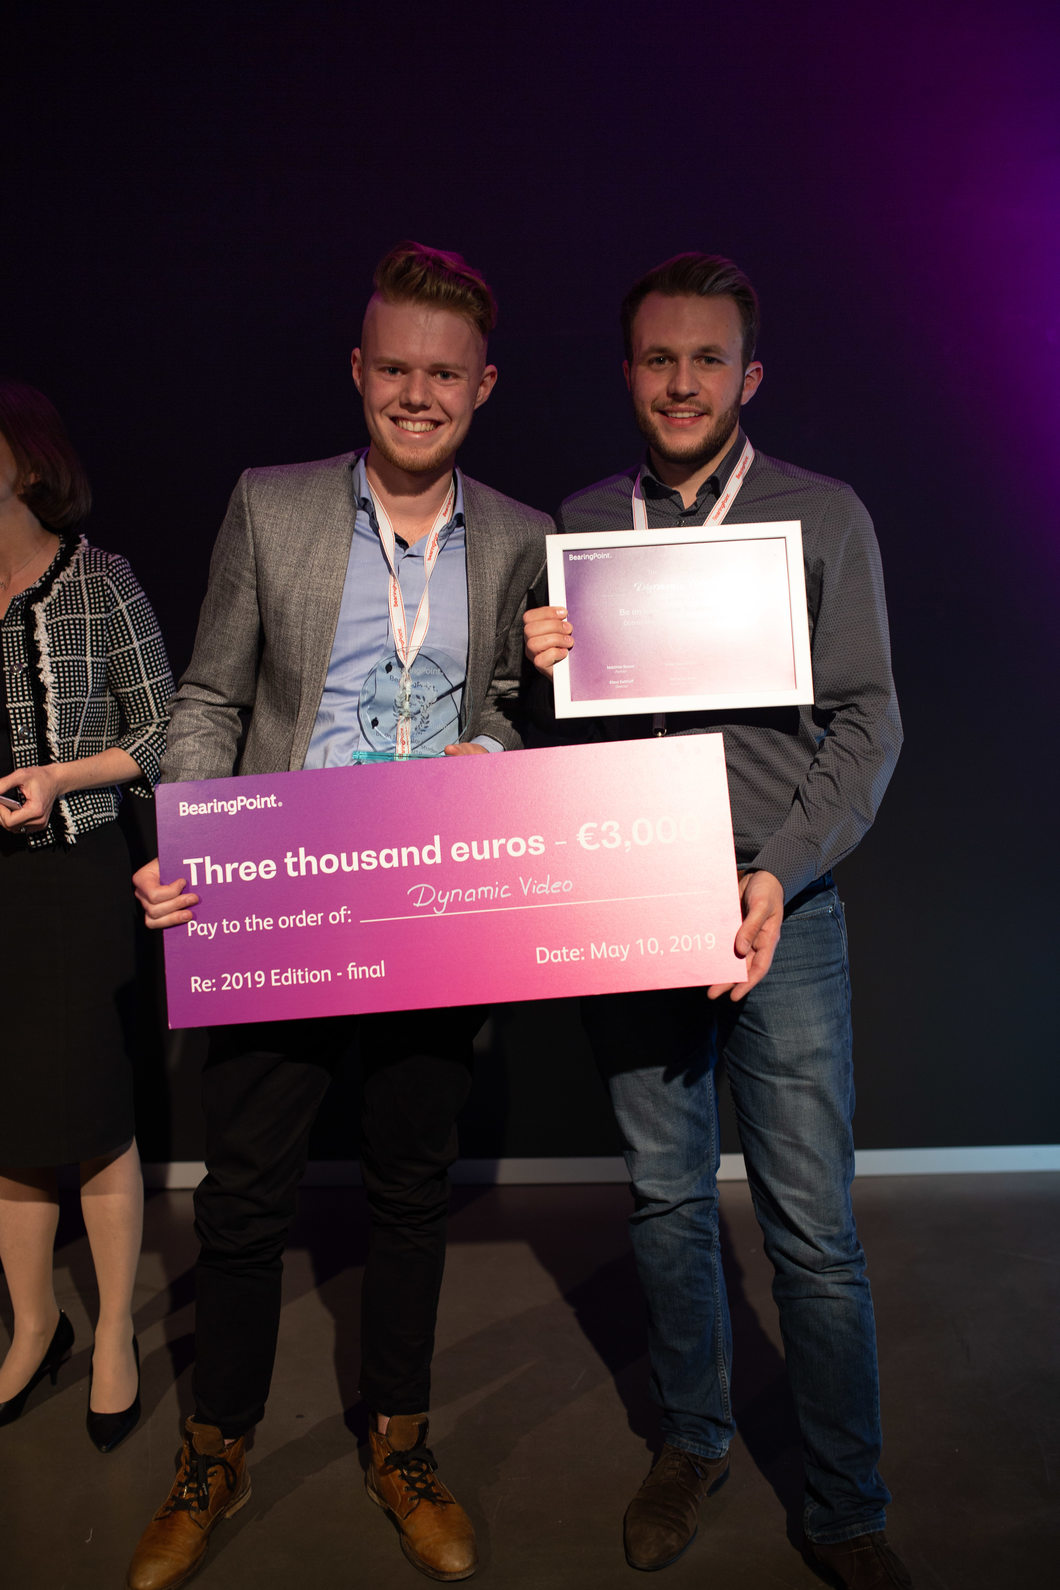 Second prize team Pave - Be an Innovator 2019